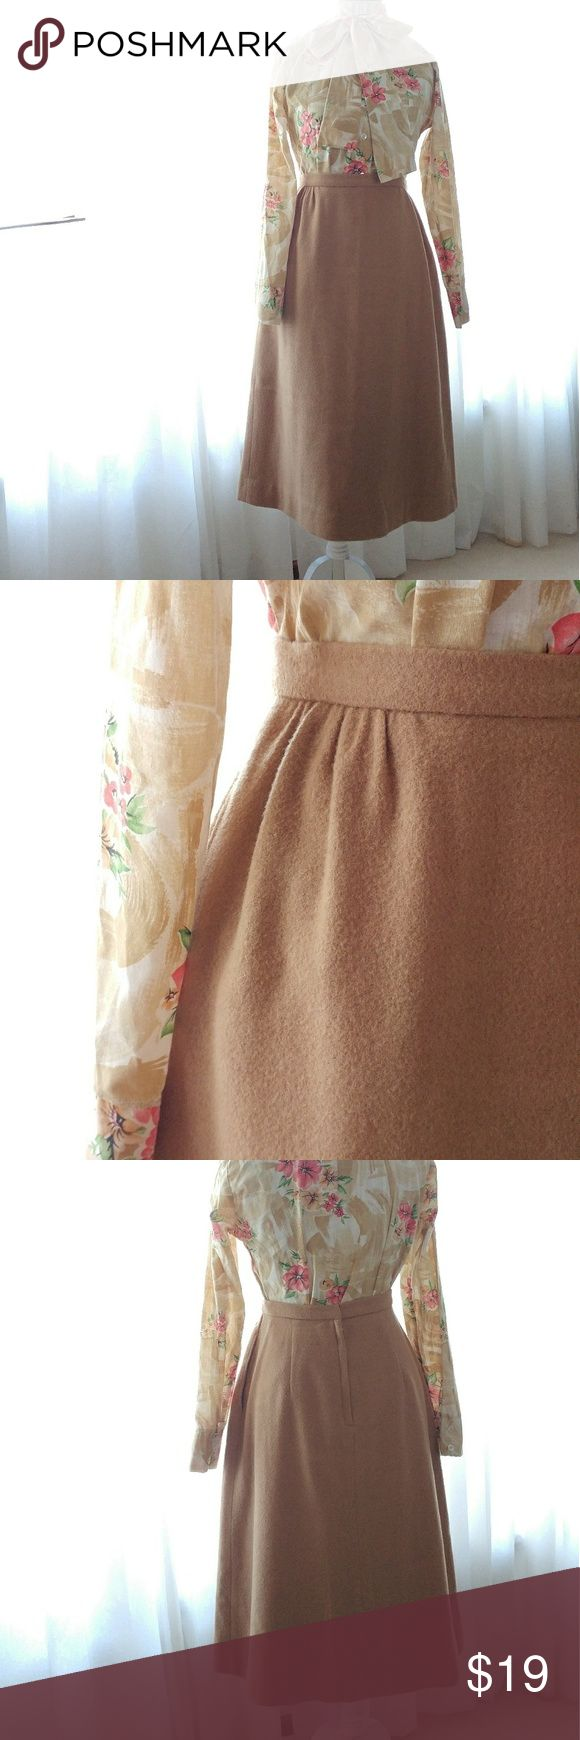 60's Tan Wool Skirt (Pockets)- Size 8-10 60's Tan Wool Skirt (Pockets)- Size 8-10  W- 29 H- 38 L- 29  Brand - Stanley Blacker  It says a size 12- more like an 8 or 10.  Item is in perfect condition. Lining and wool no holes or stains.  #wool #woolskirt #tanskirt #pockets #skirtwithpockets #size10 #size8 #medium #sizeM Skirts A-Line or Full